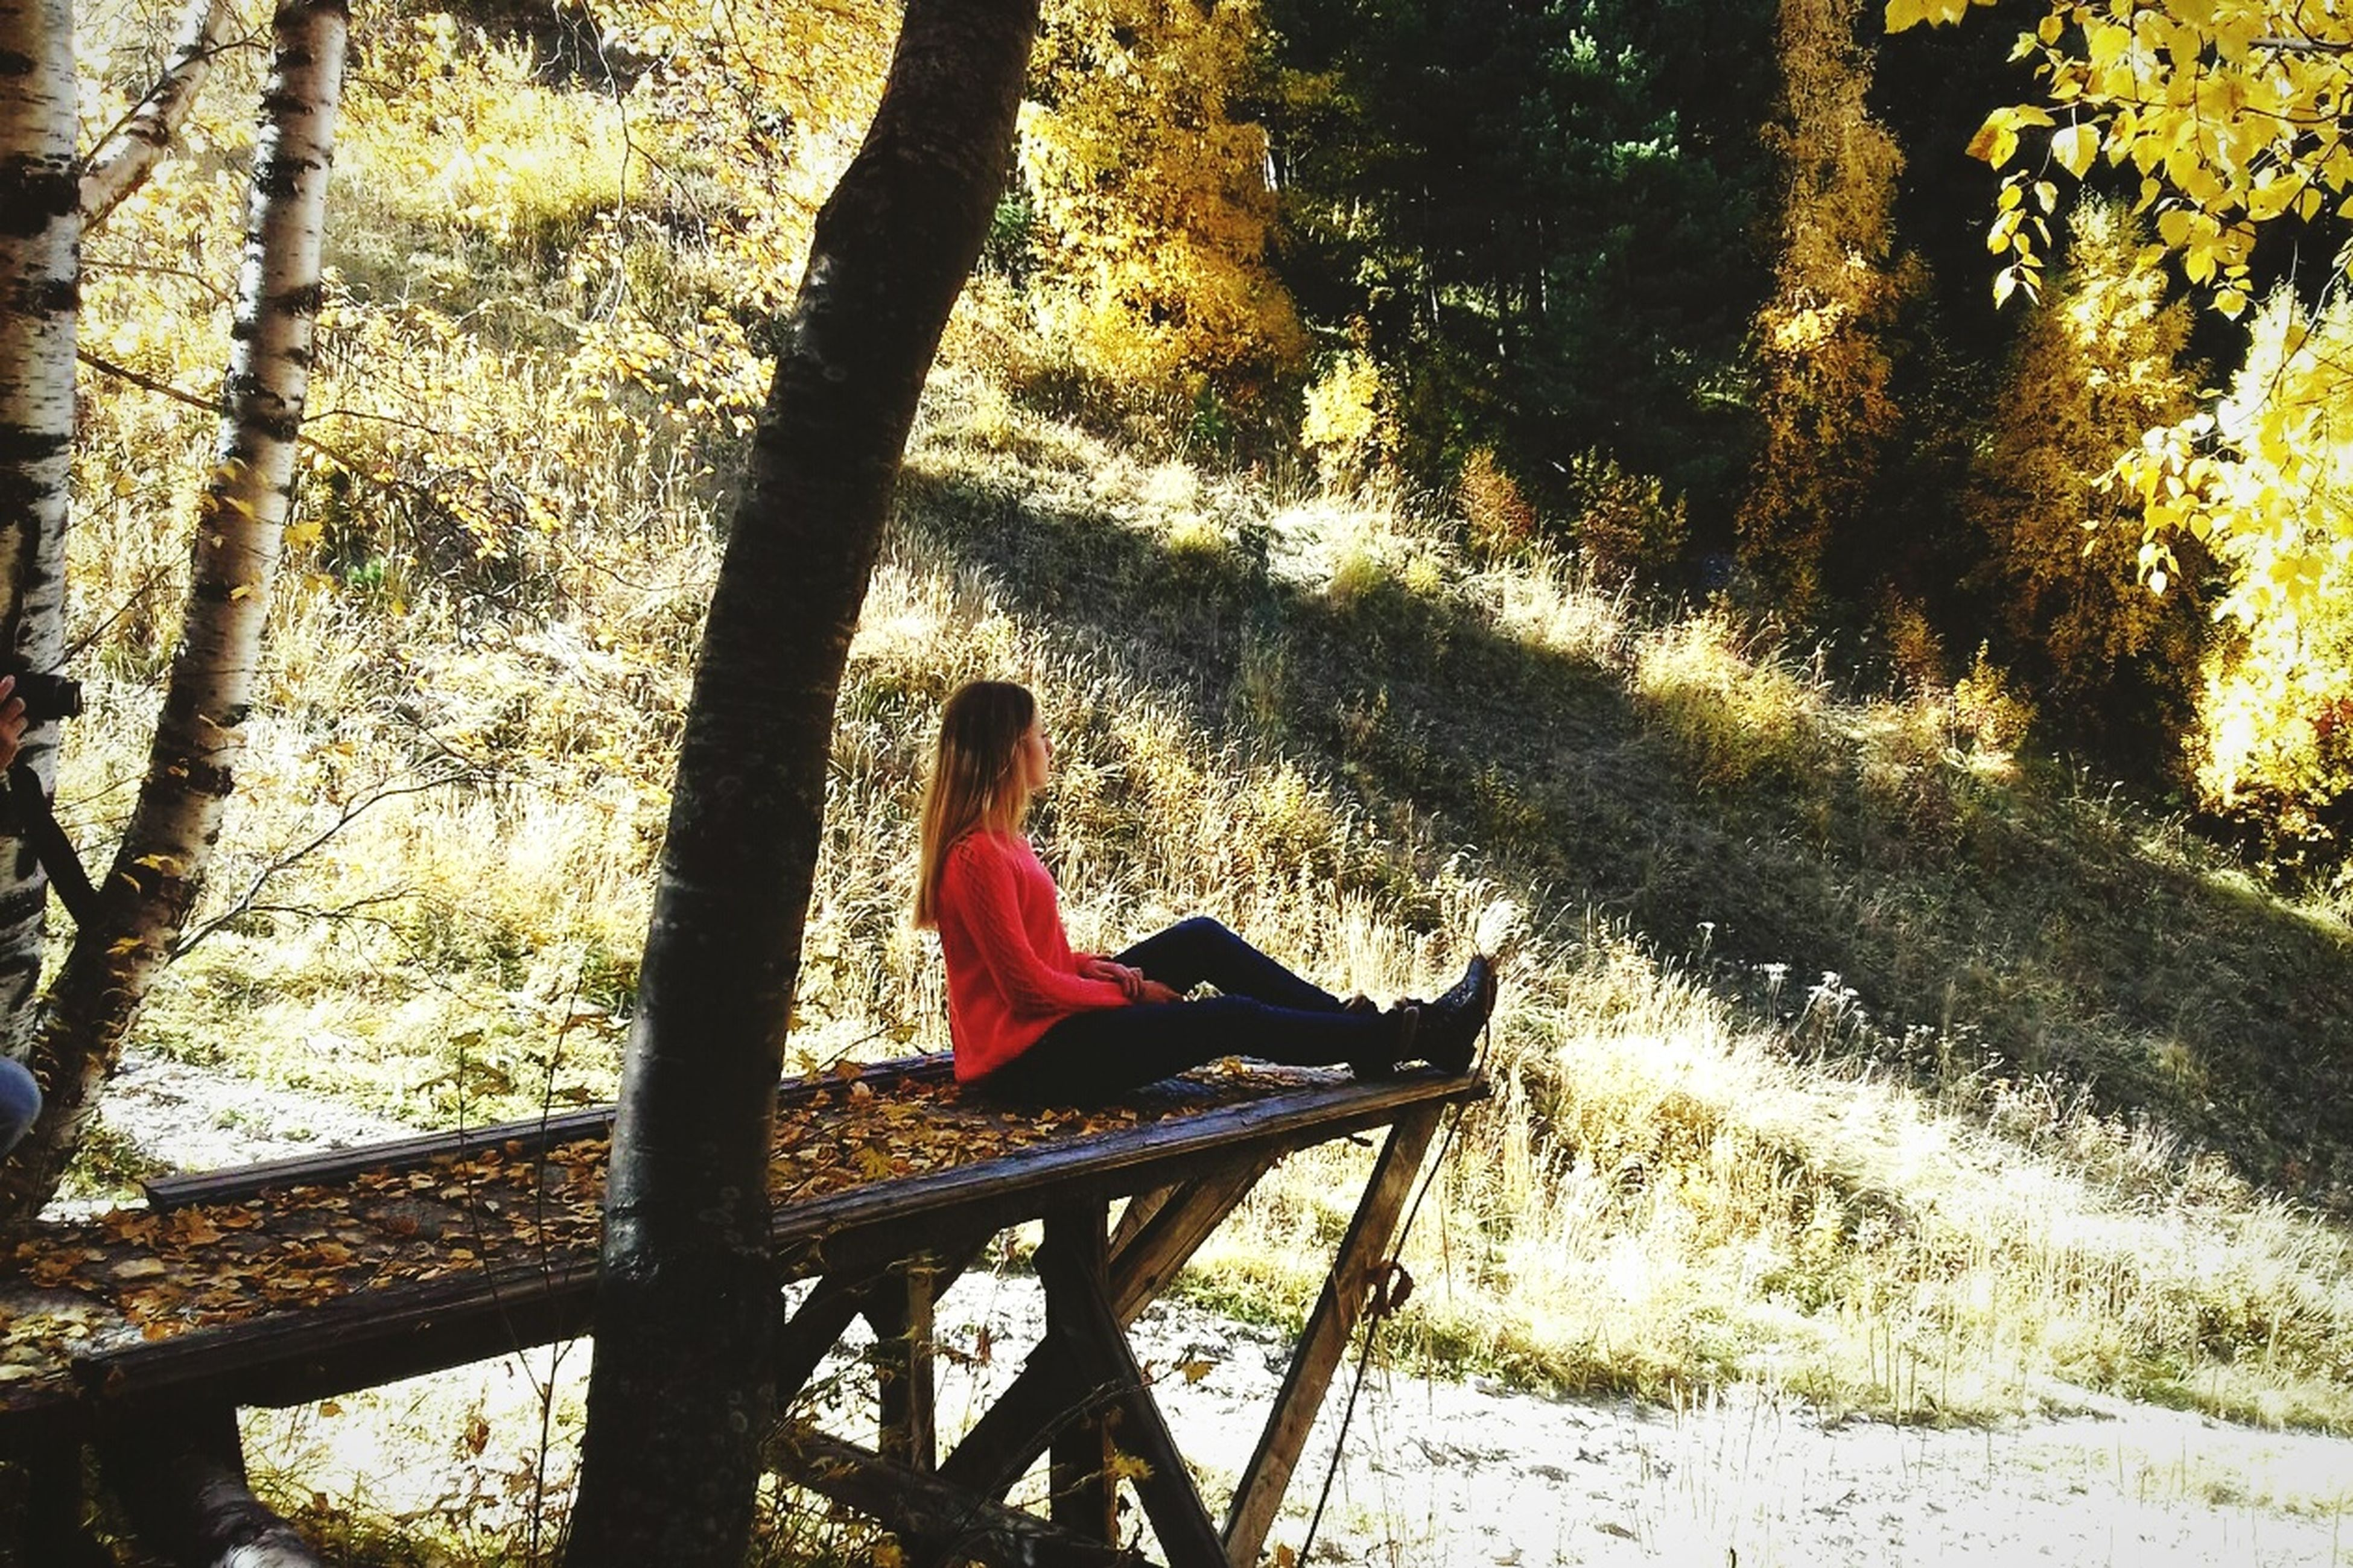 tree, sitting, full length, casual clothing, leisure activity, tree trunk, relaxation, nature, person, solitude, tranquility, day, outdoors, remote, tranquil scene, non-urban scene